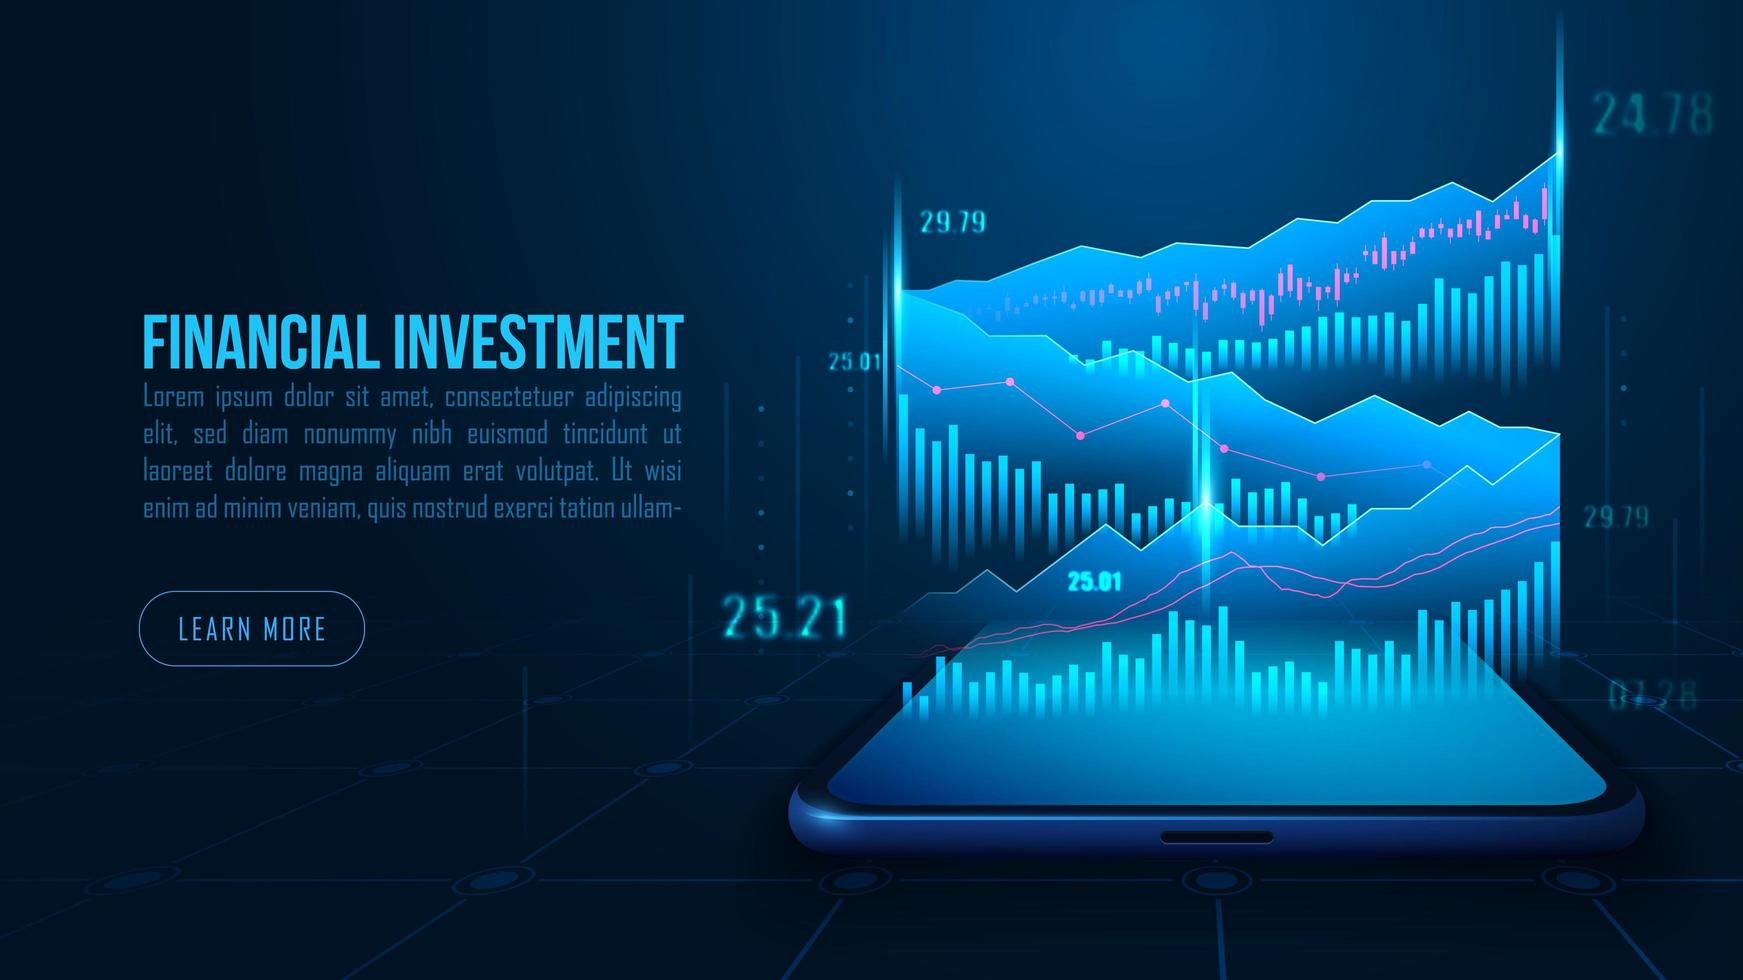 Isometric stock or forex trading chart on smartphone vector